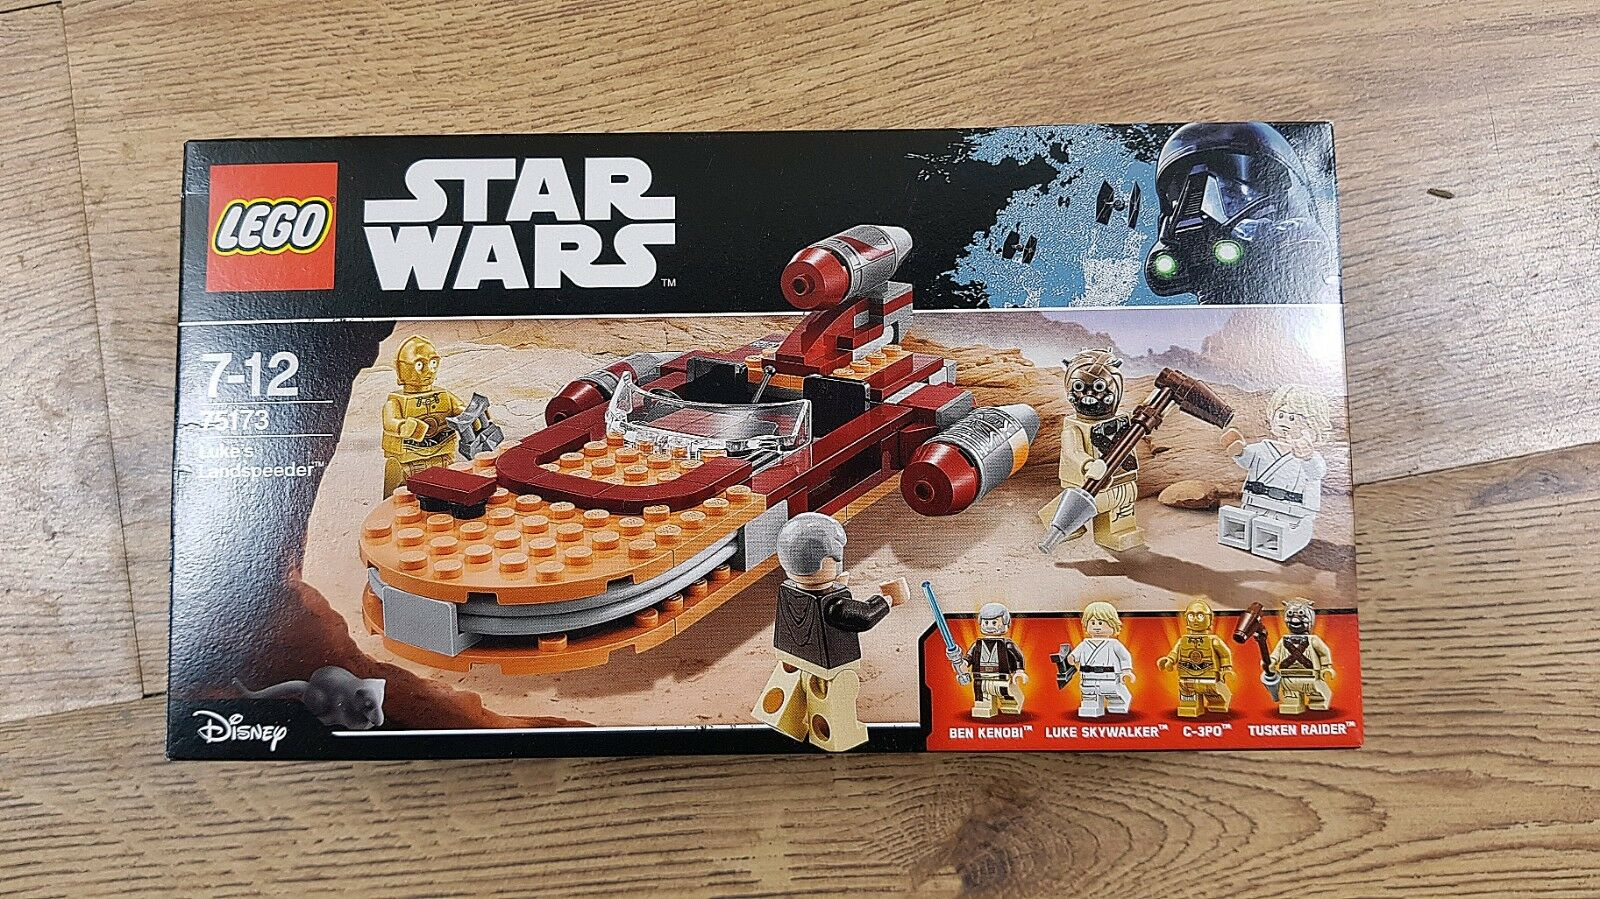 LEGO Star Wars 75173 Luke's Landspeeder (2017)   New, Unopened, Great Condition